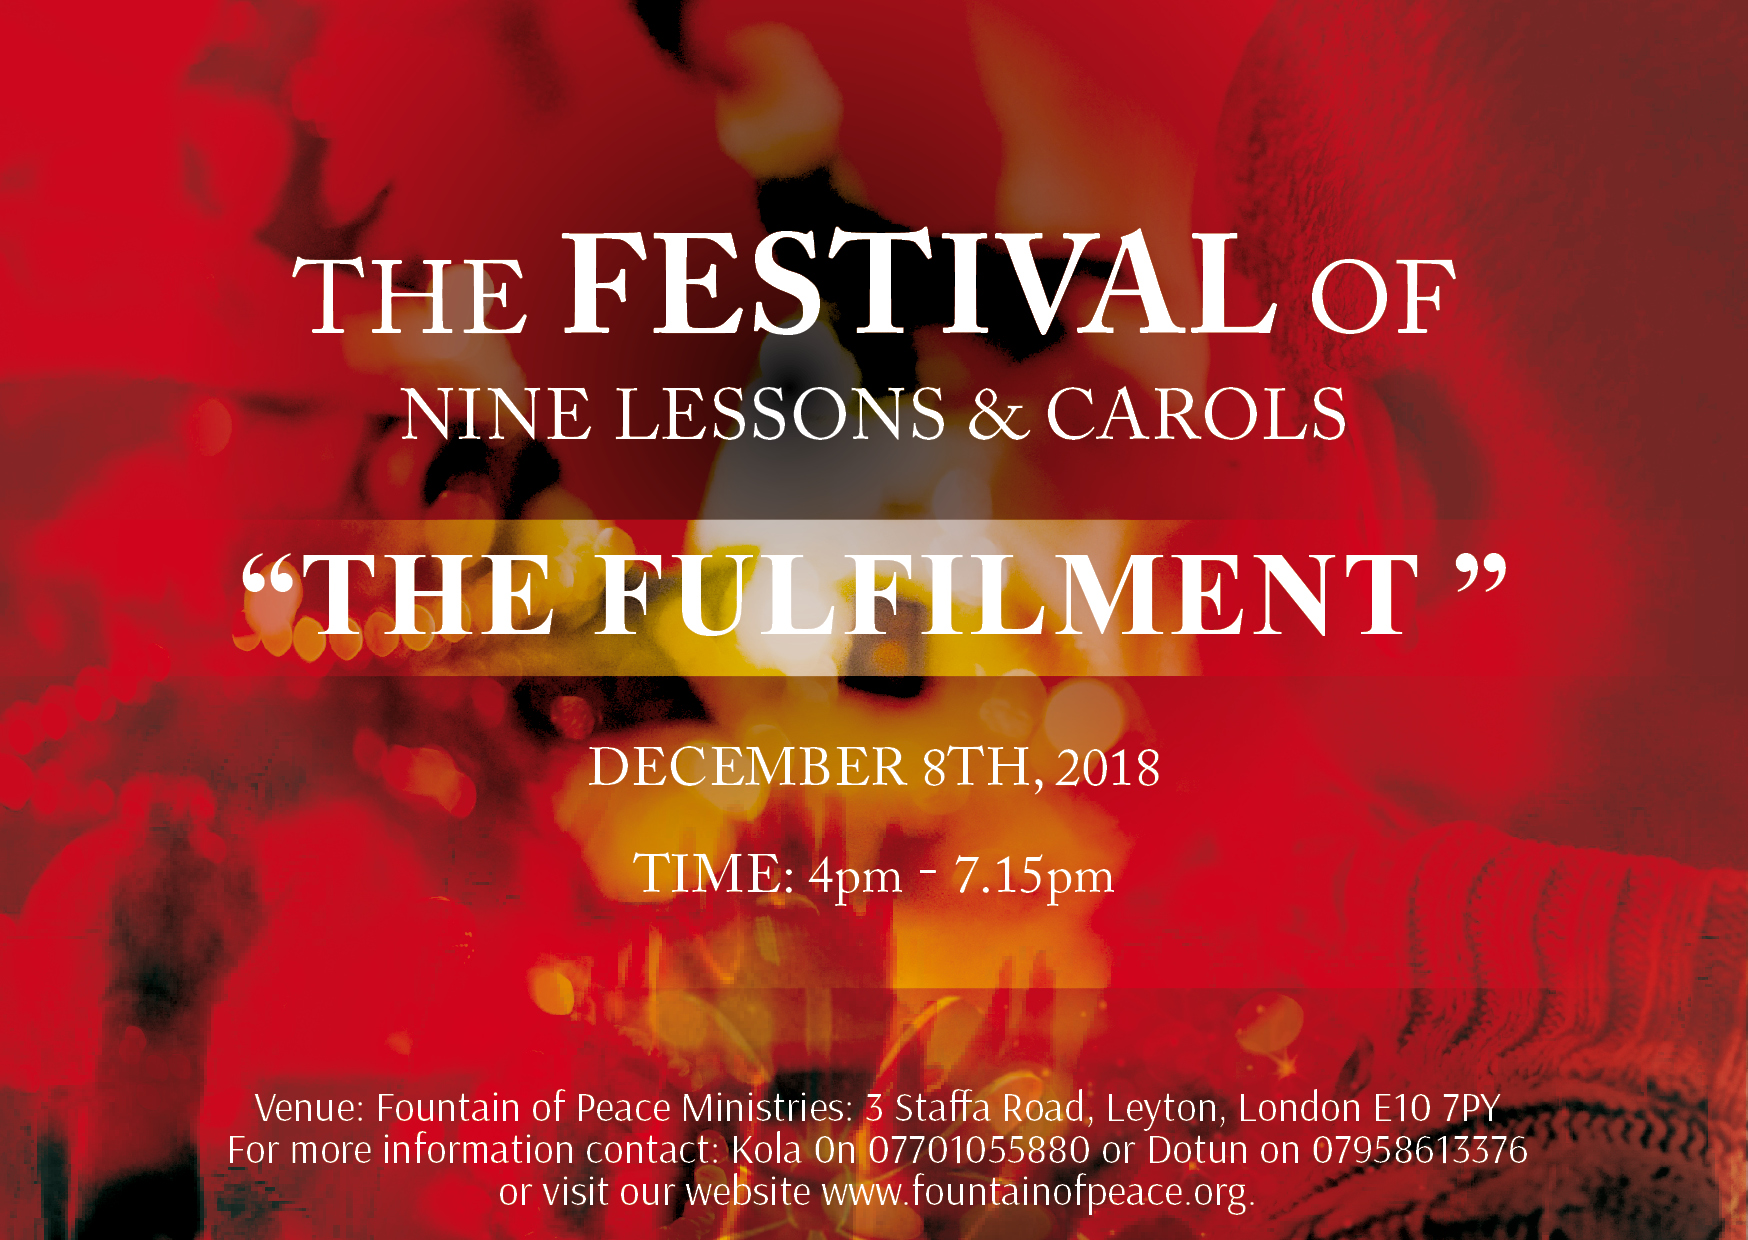 The Festival of Nine Lessons & Carols